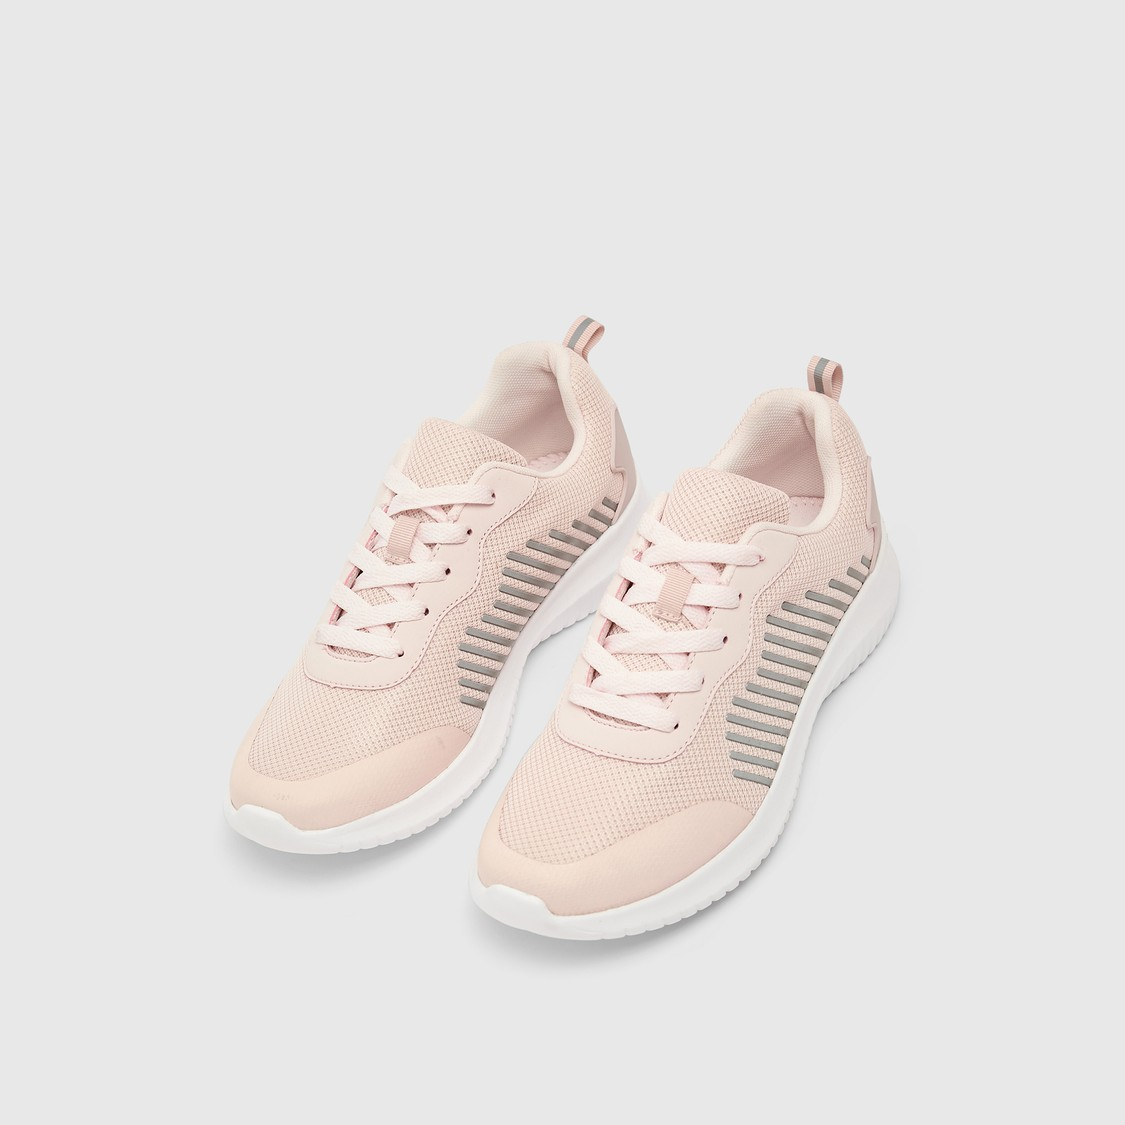 Textured Lace-Up Shoes with Pull Tabs